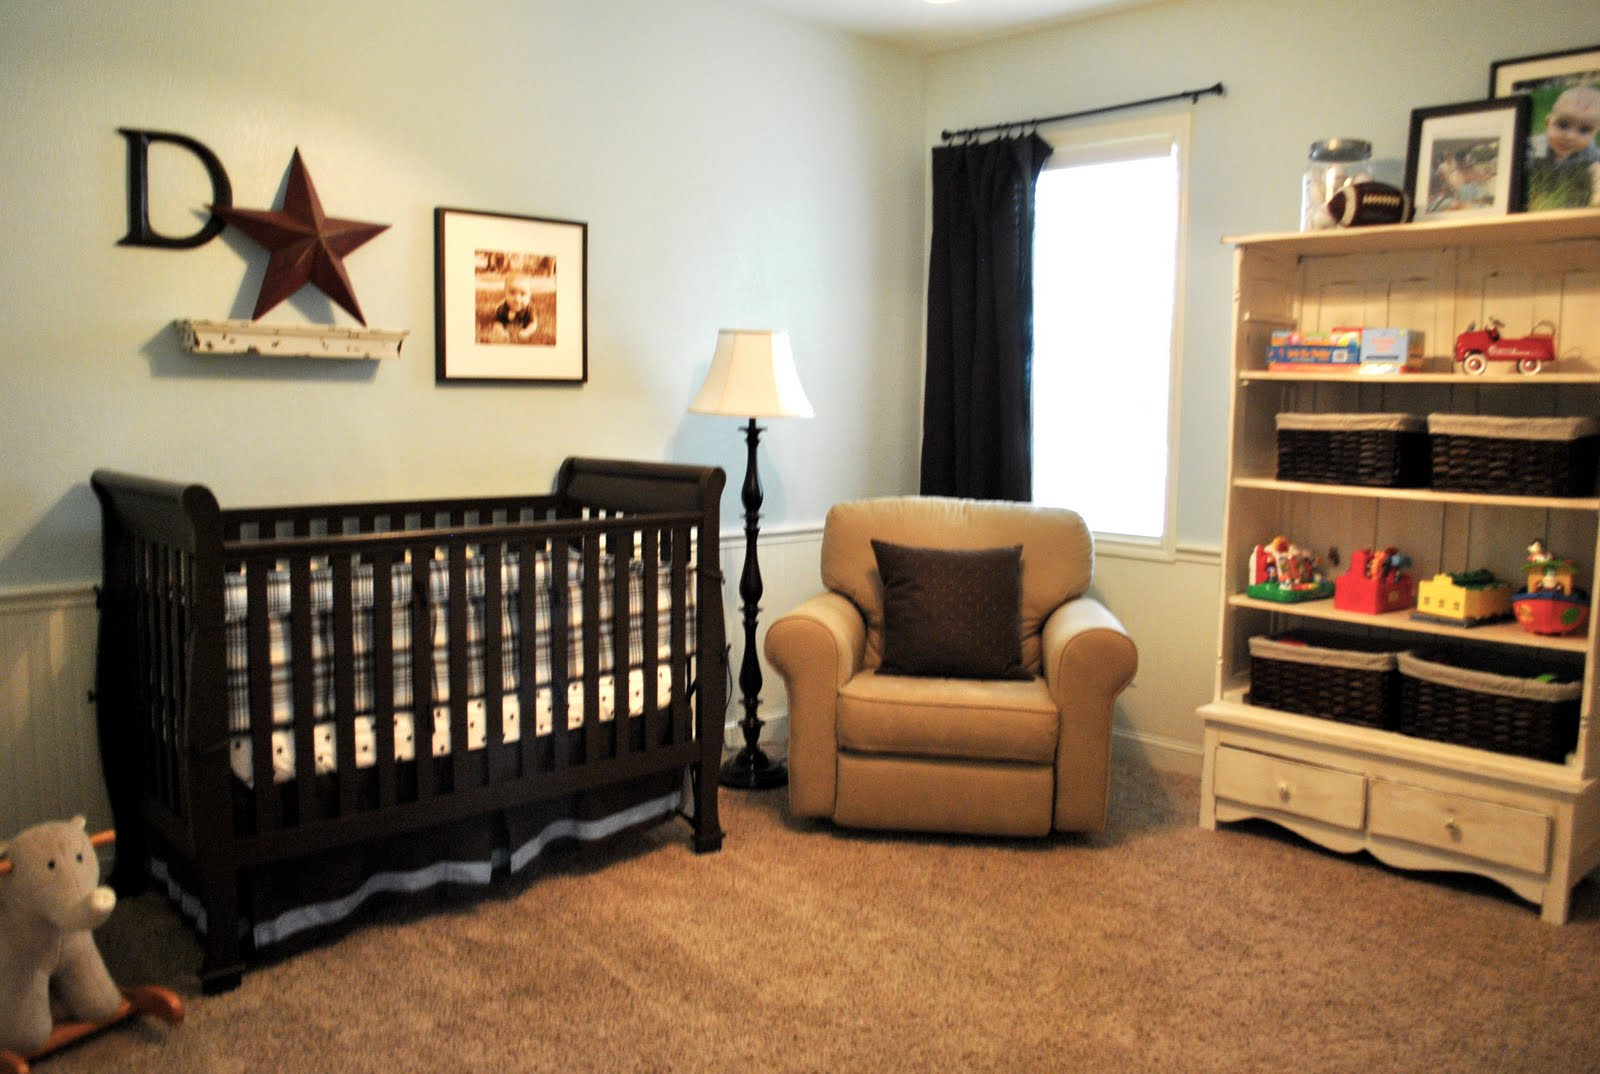 That village house baby boy 39 s nursery for Deco de interiores